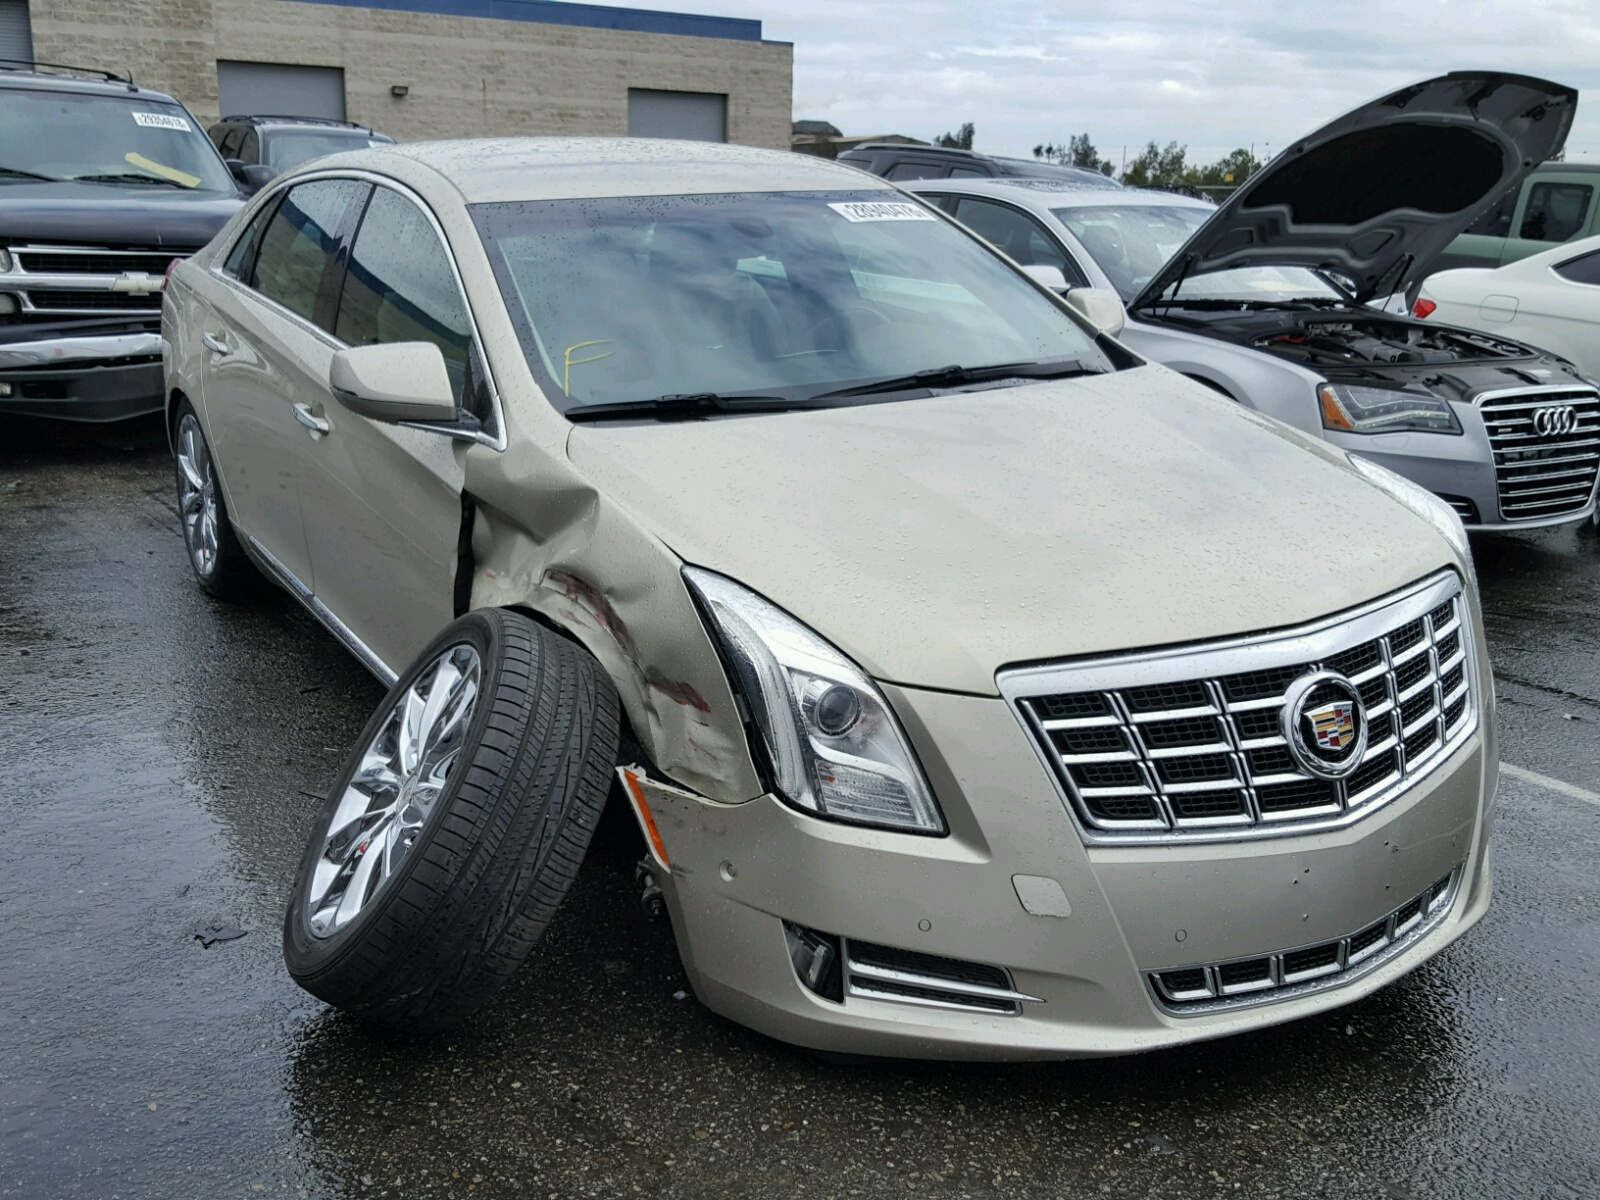 this for changes benz featured competes sale that cadillac is new cars with e xts minor only dealers it used size vehicles and full audi sees car sedan class the chicago mercedes a